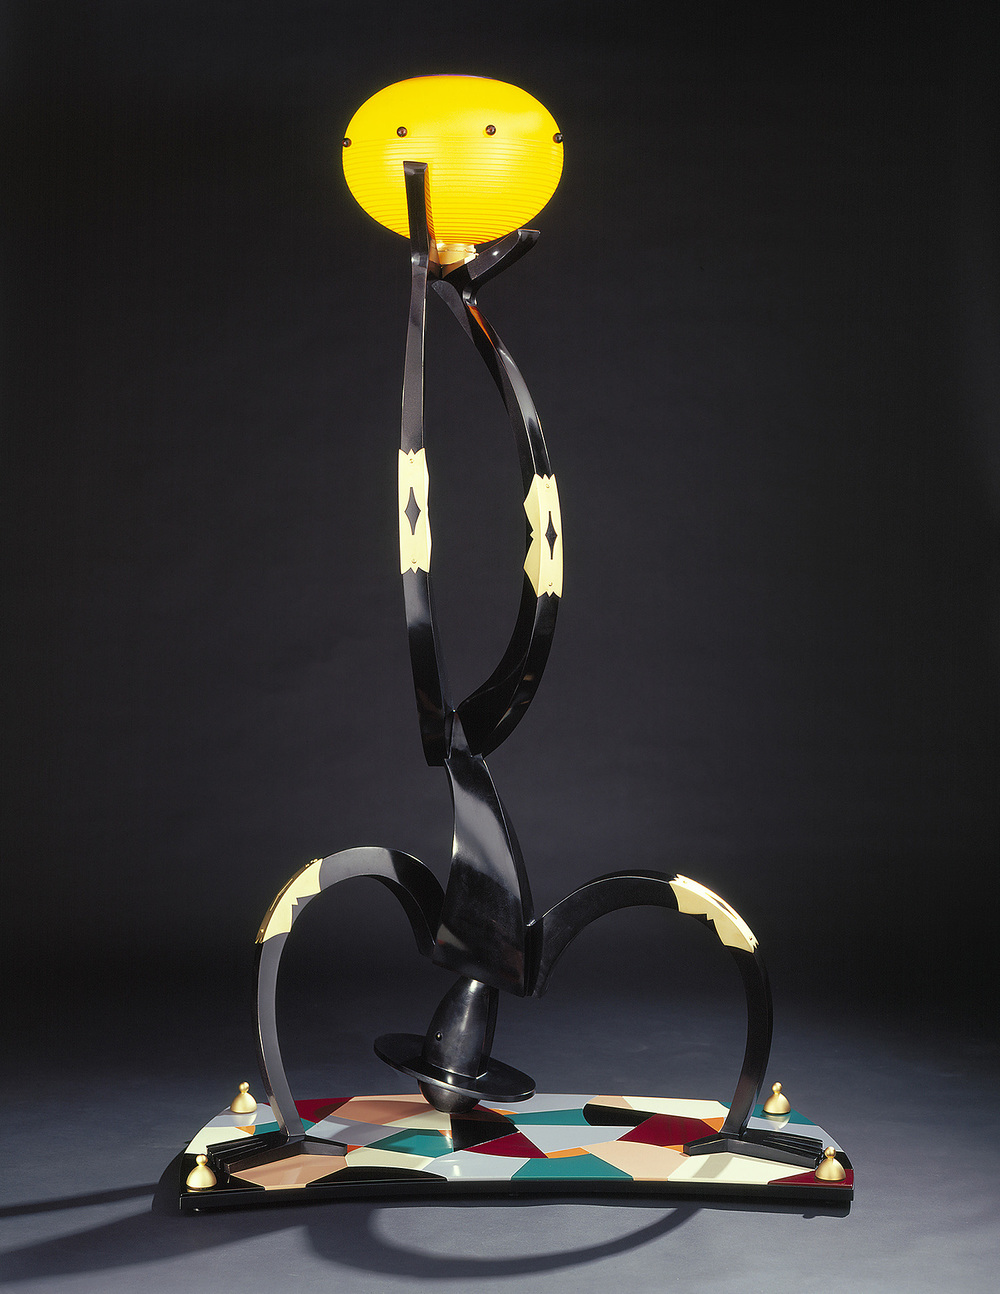 Upside Down Man   (1/6) 2001. Blown glass, cast and patinated bronze, gold-plated brass, aluminum, Vitrolite and lampworked glass. 78 x 54 x 24""